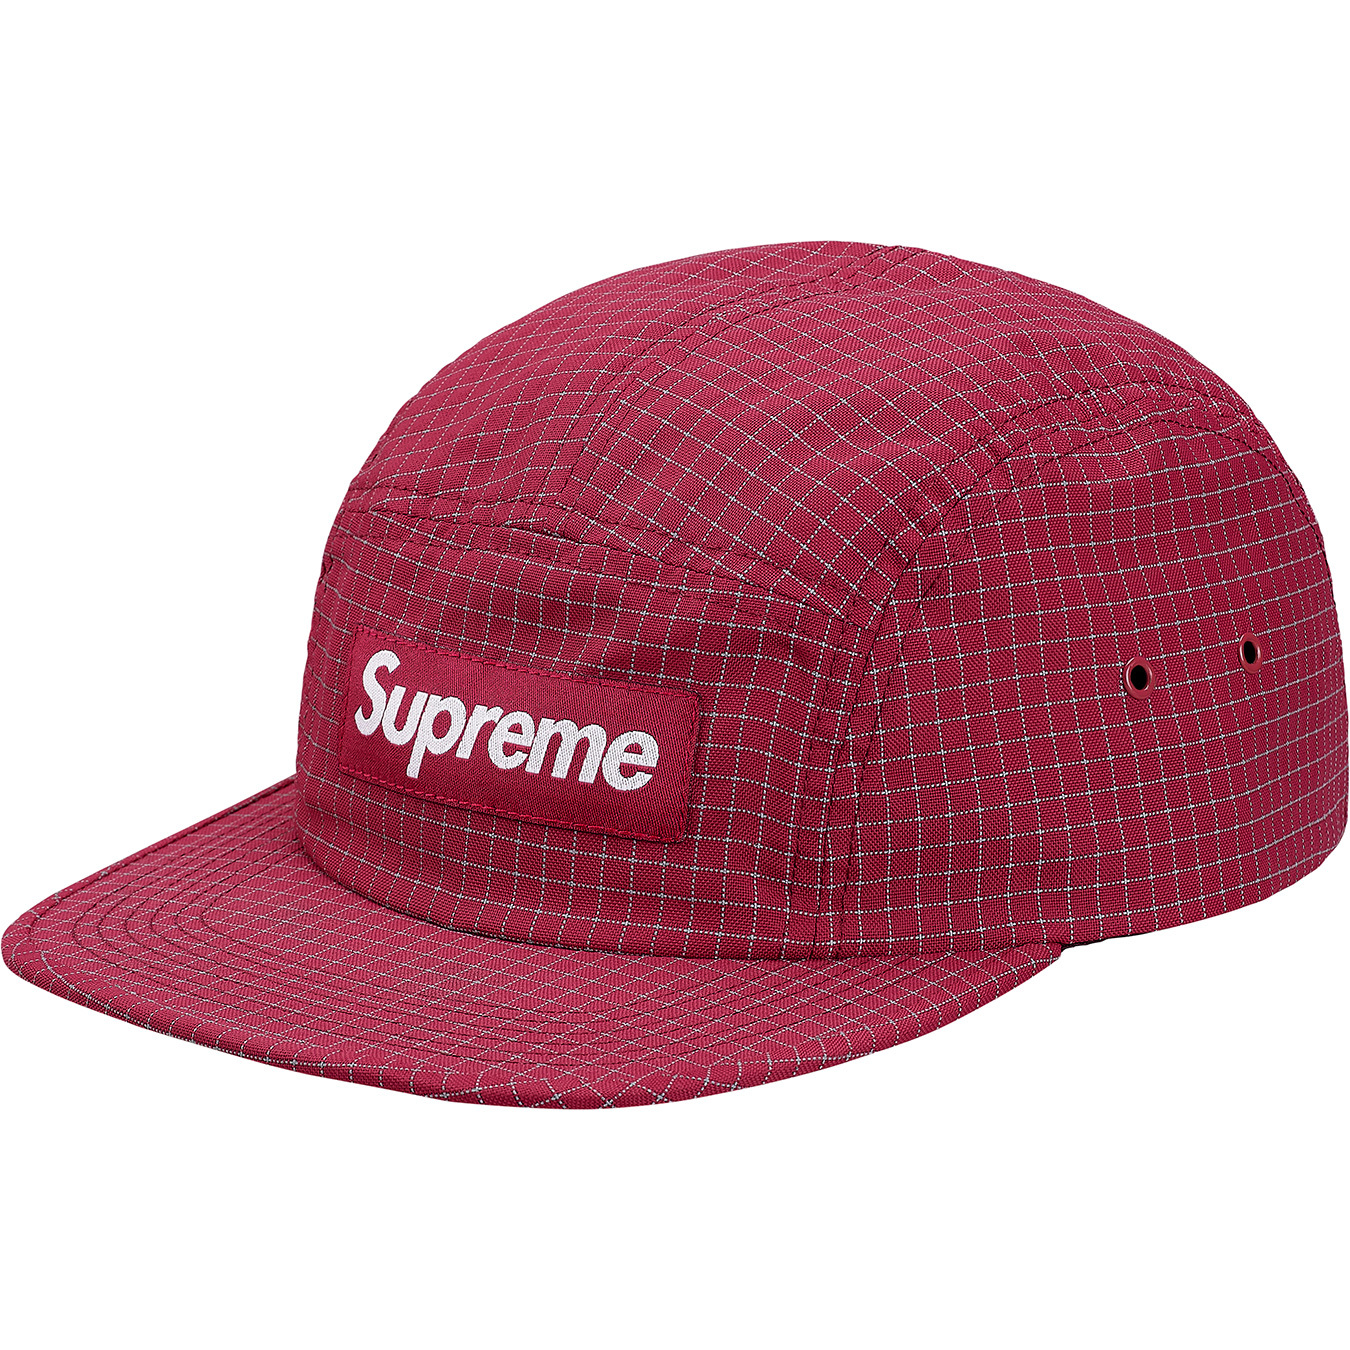 supreme-18aw-fall-winter-reflective-ripstop-camp-cap